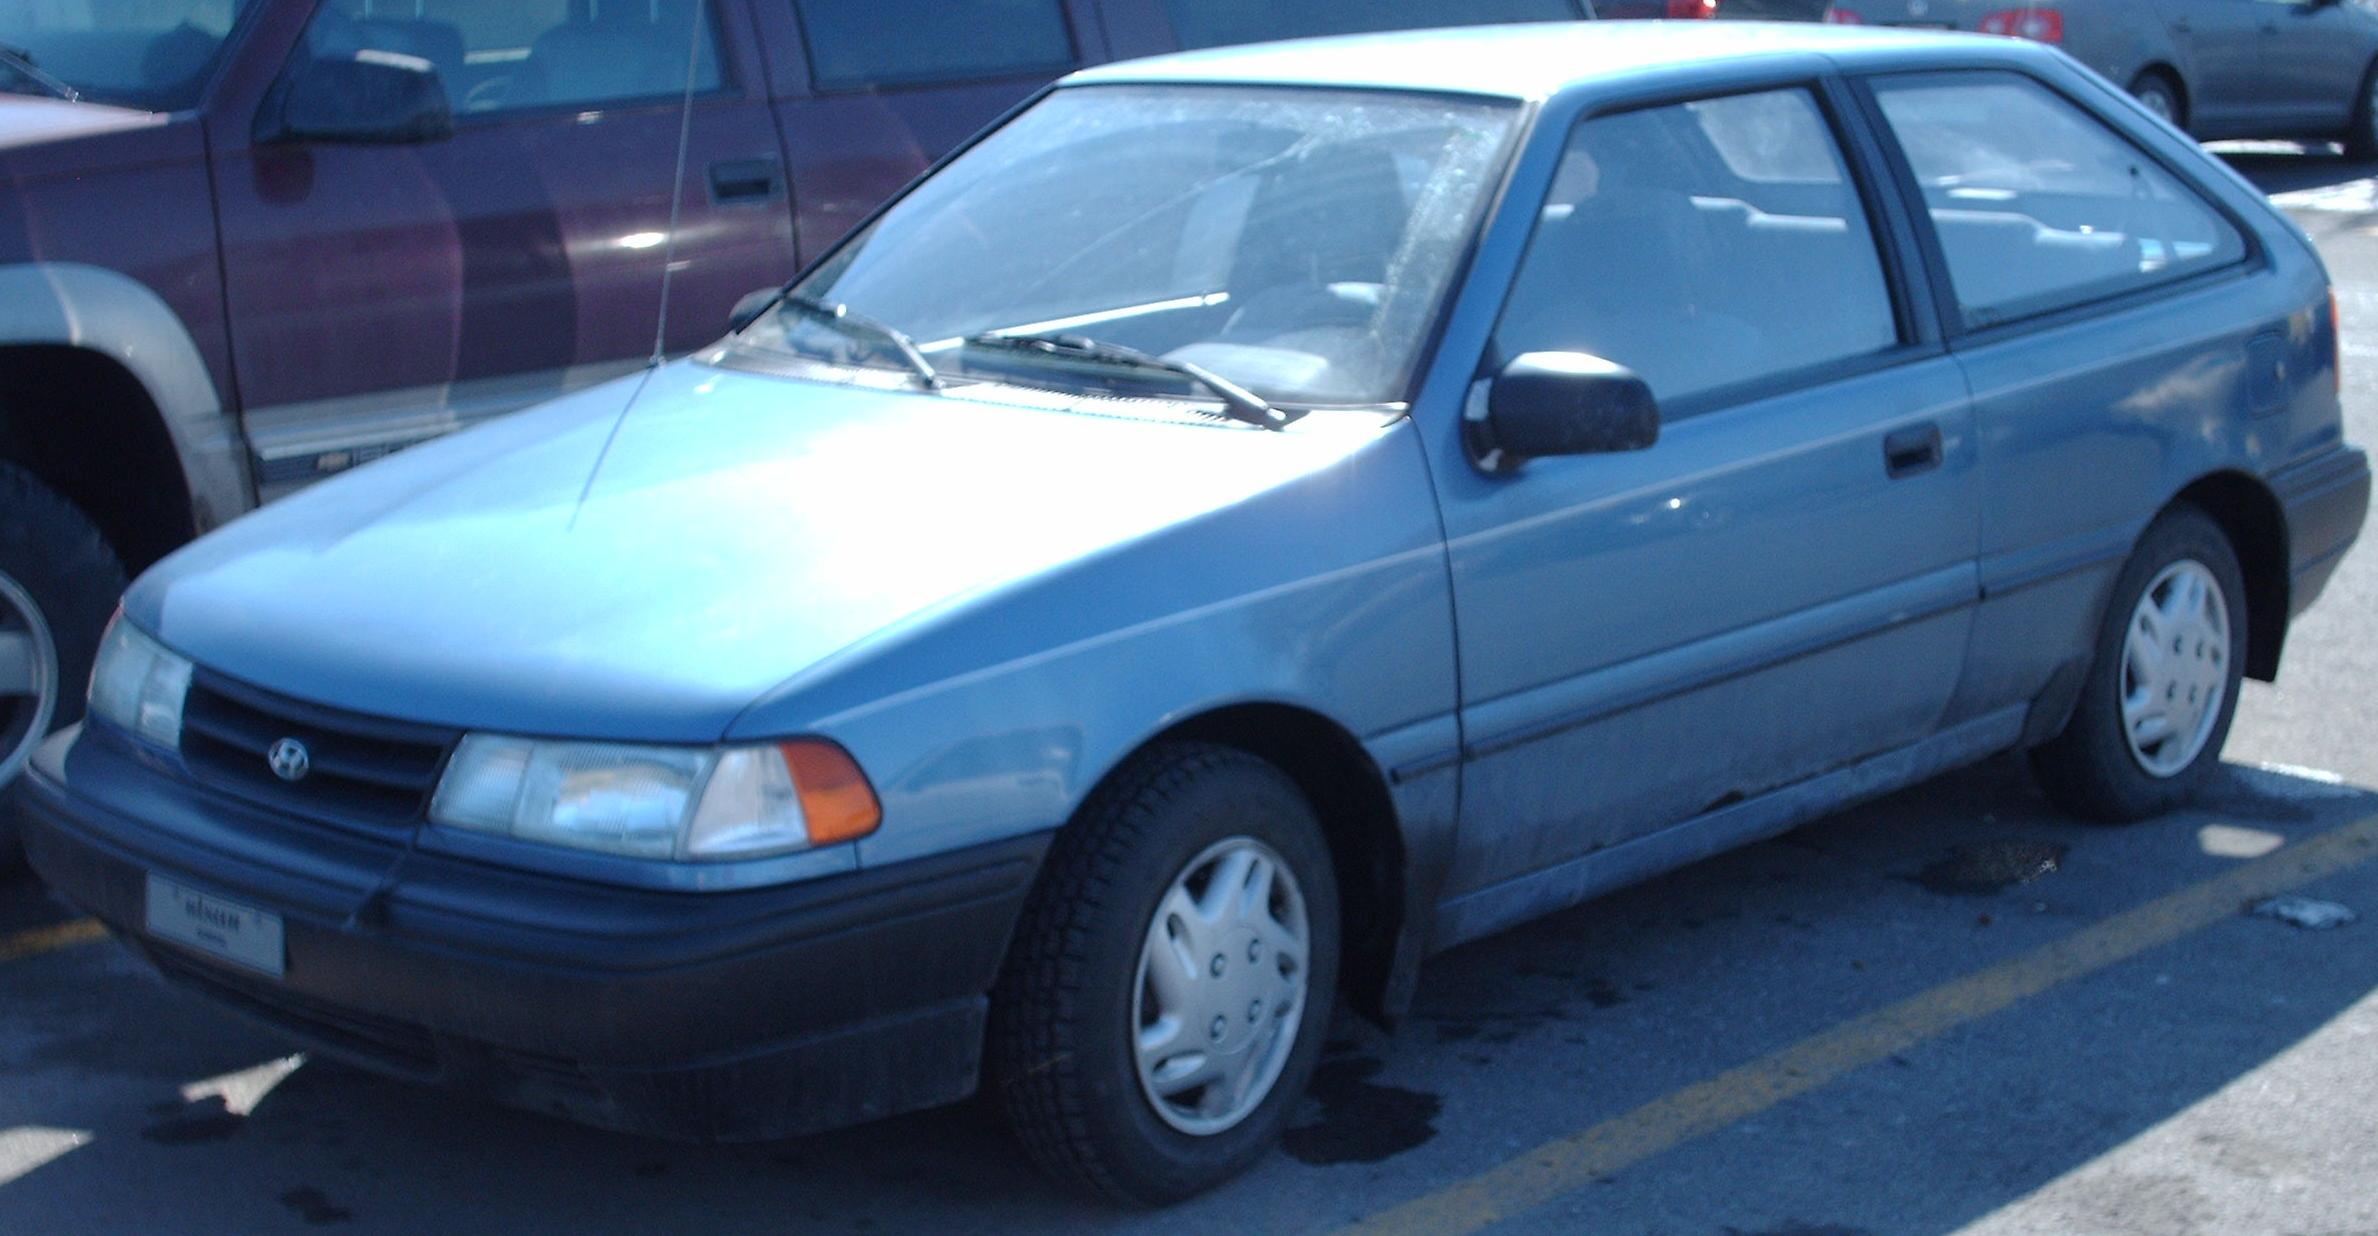 File Hyundai Excel Hatchback 92 94 Jpg Wikimedia Commons